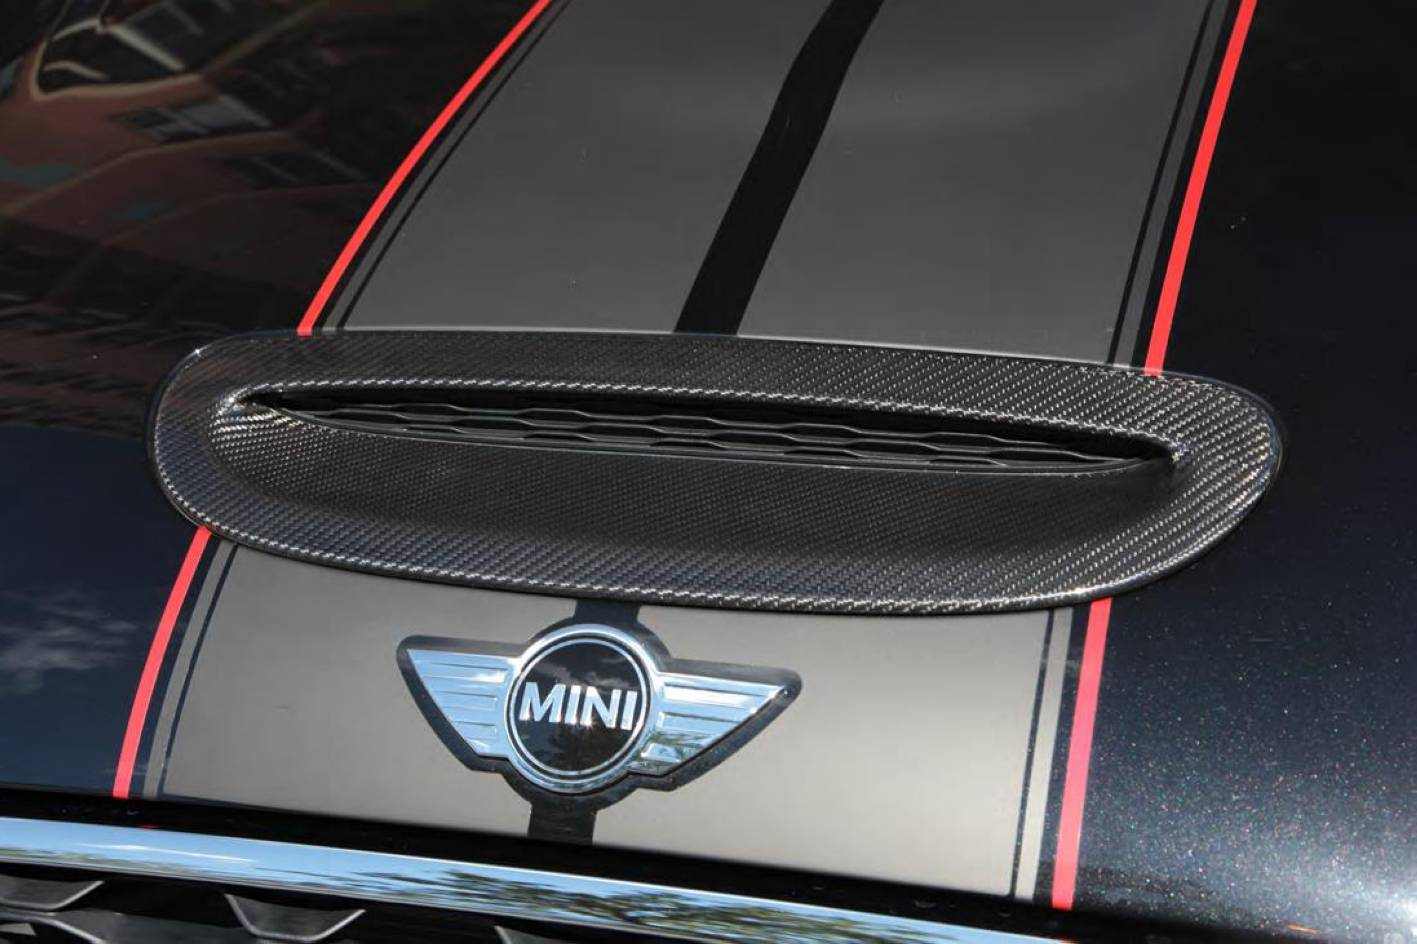 Jcw Inspired Mini Carbon Edition Available In Australia